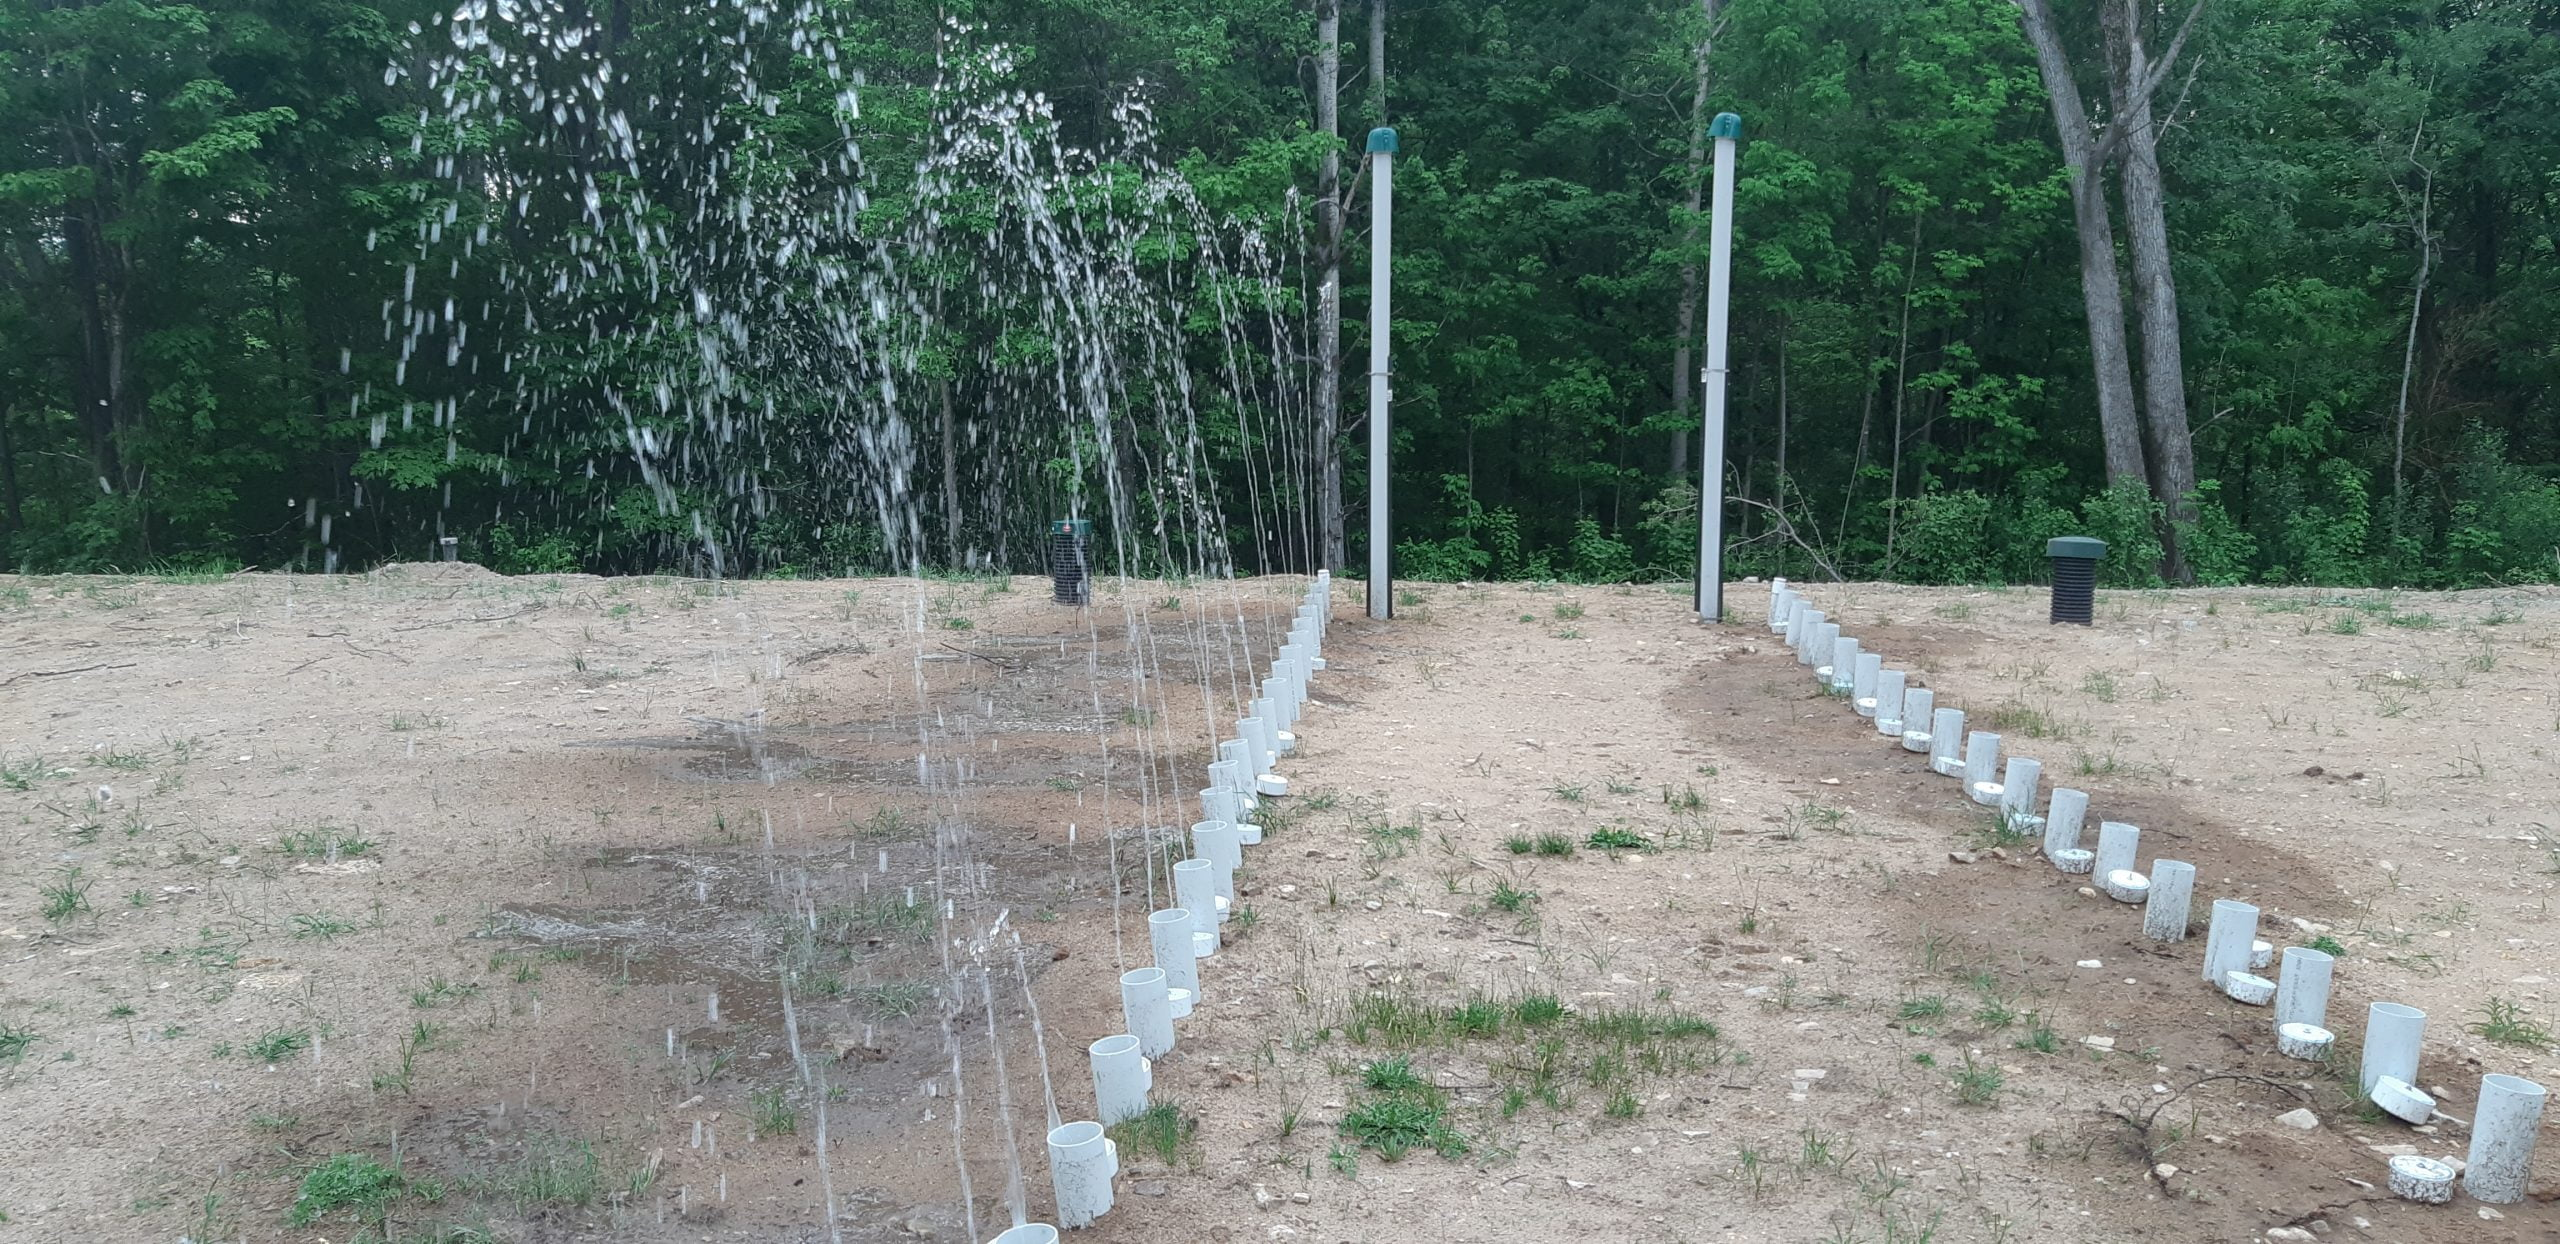 Chemical phosphorus removal for a lakeside campground - Case Study 6